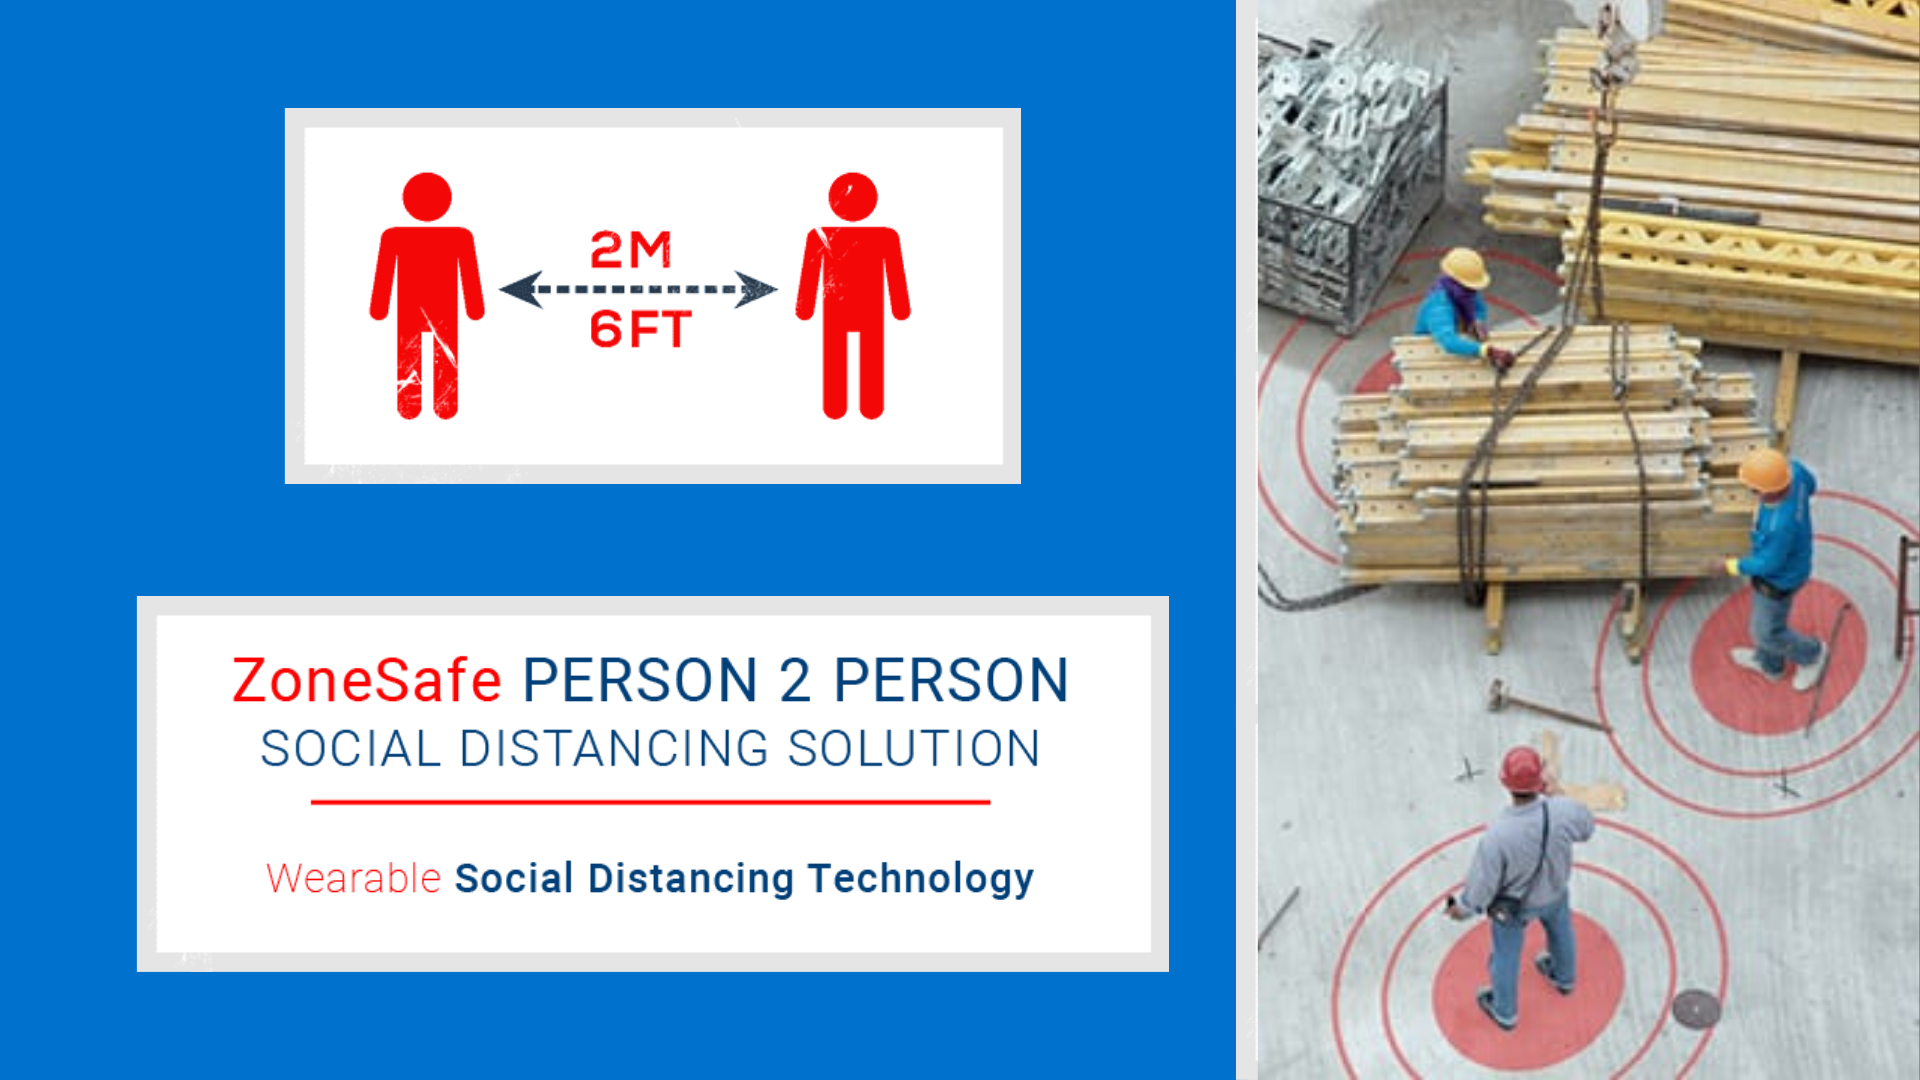 Zone Safe P2 P Social Distancing Solution